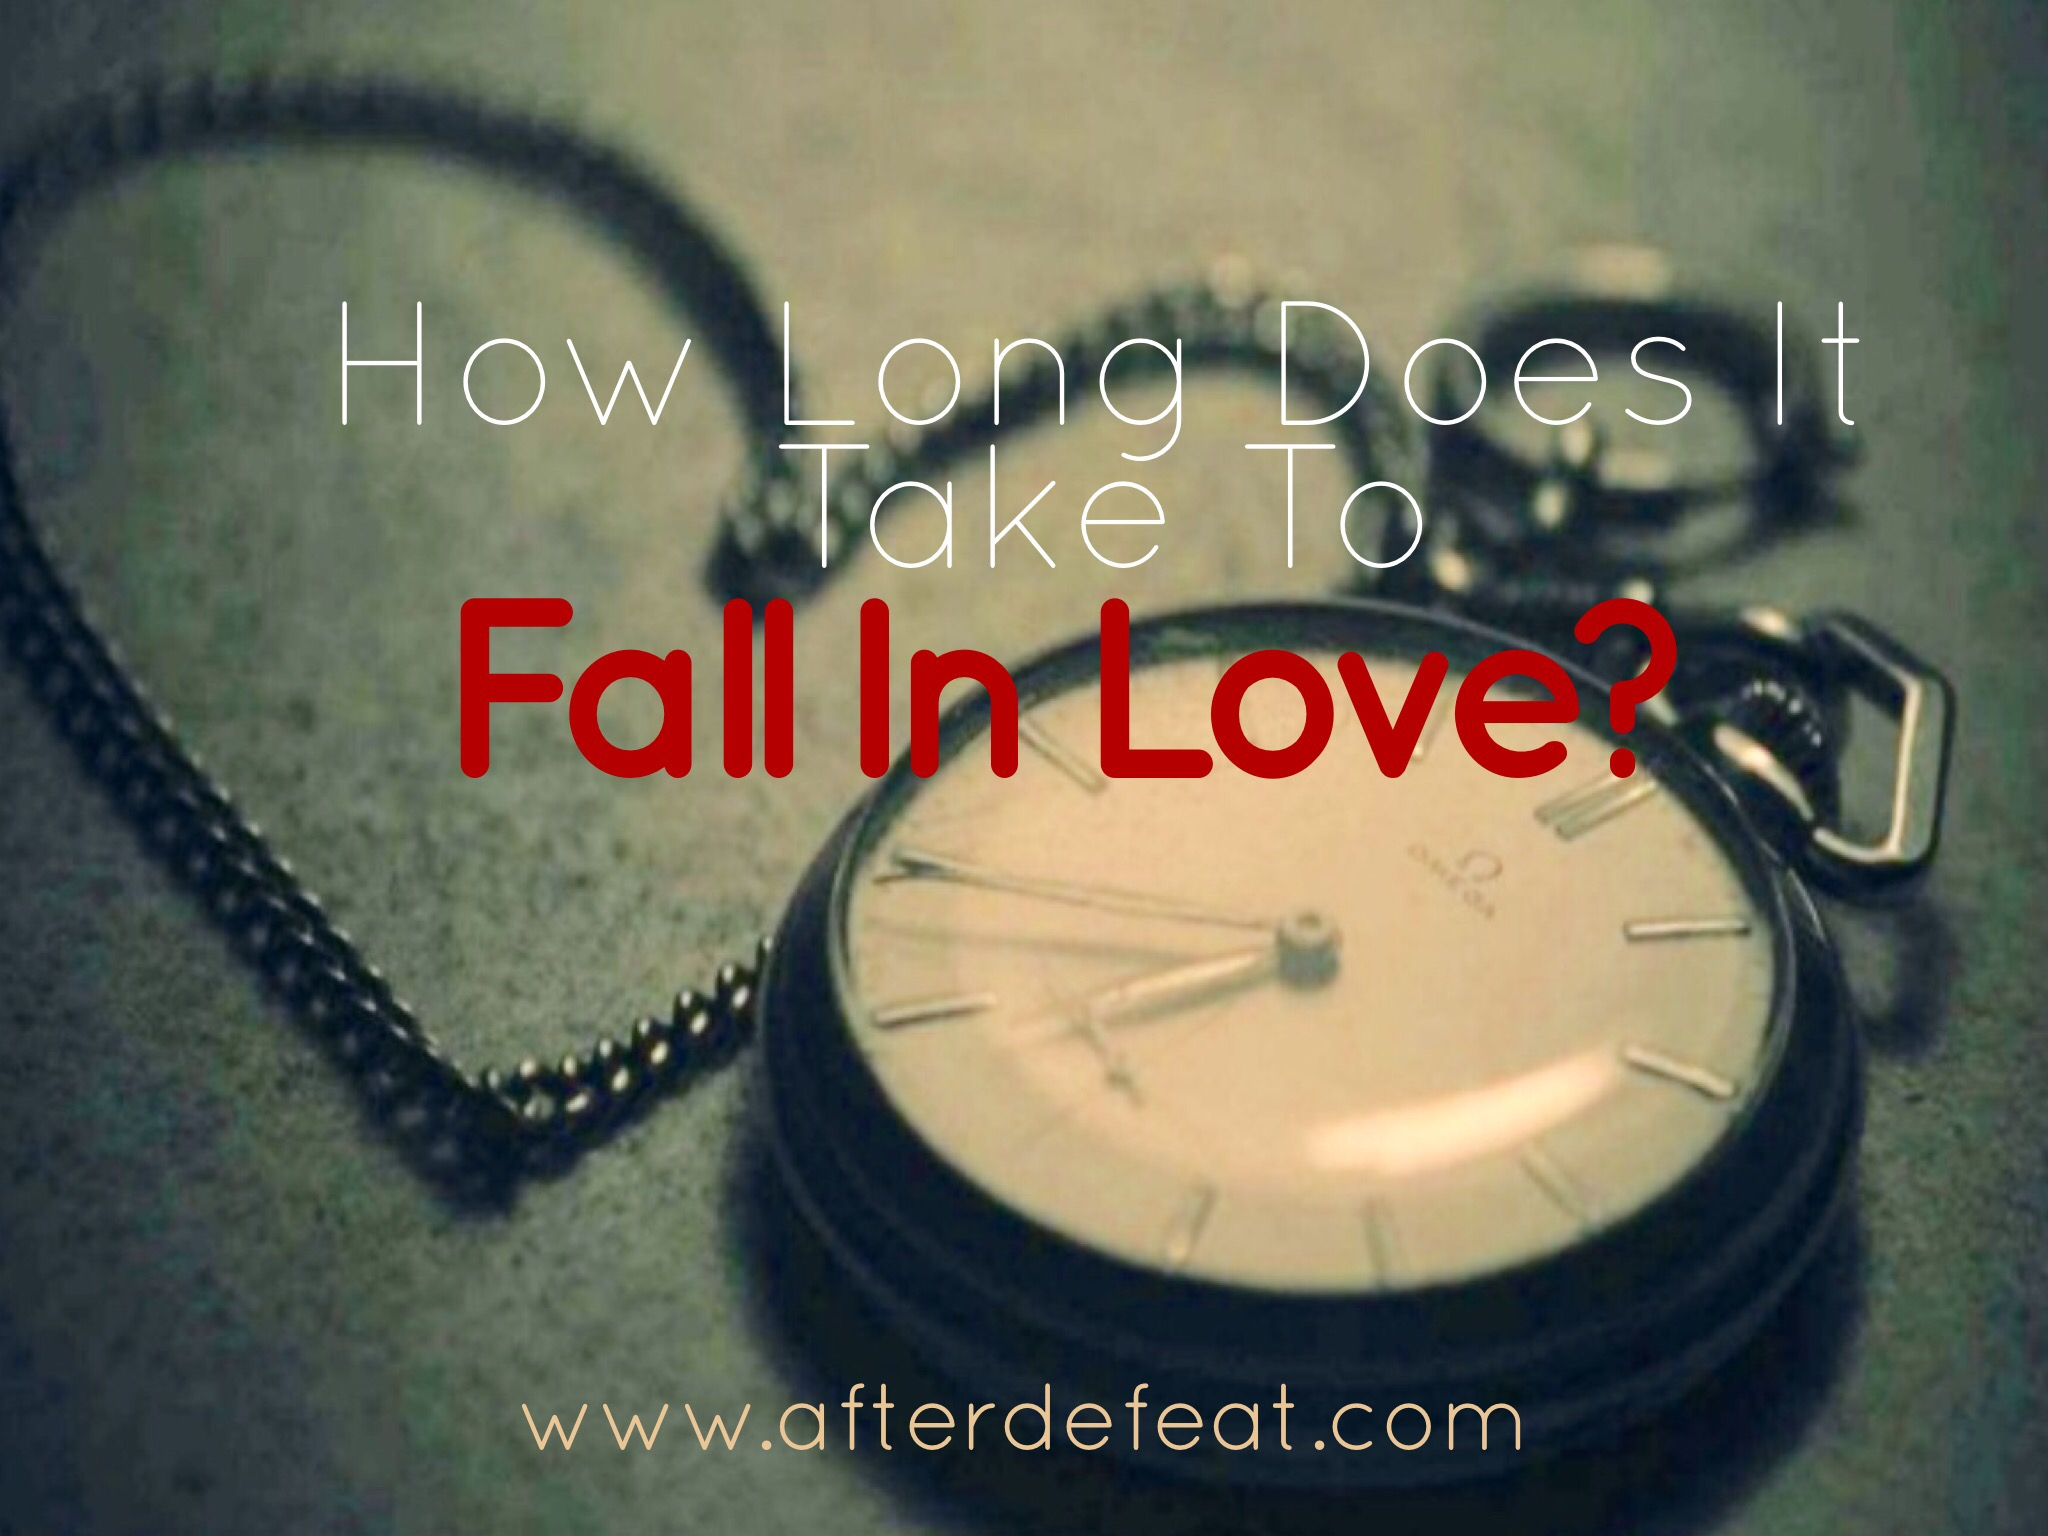 How long does falling in love take